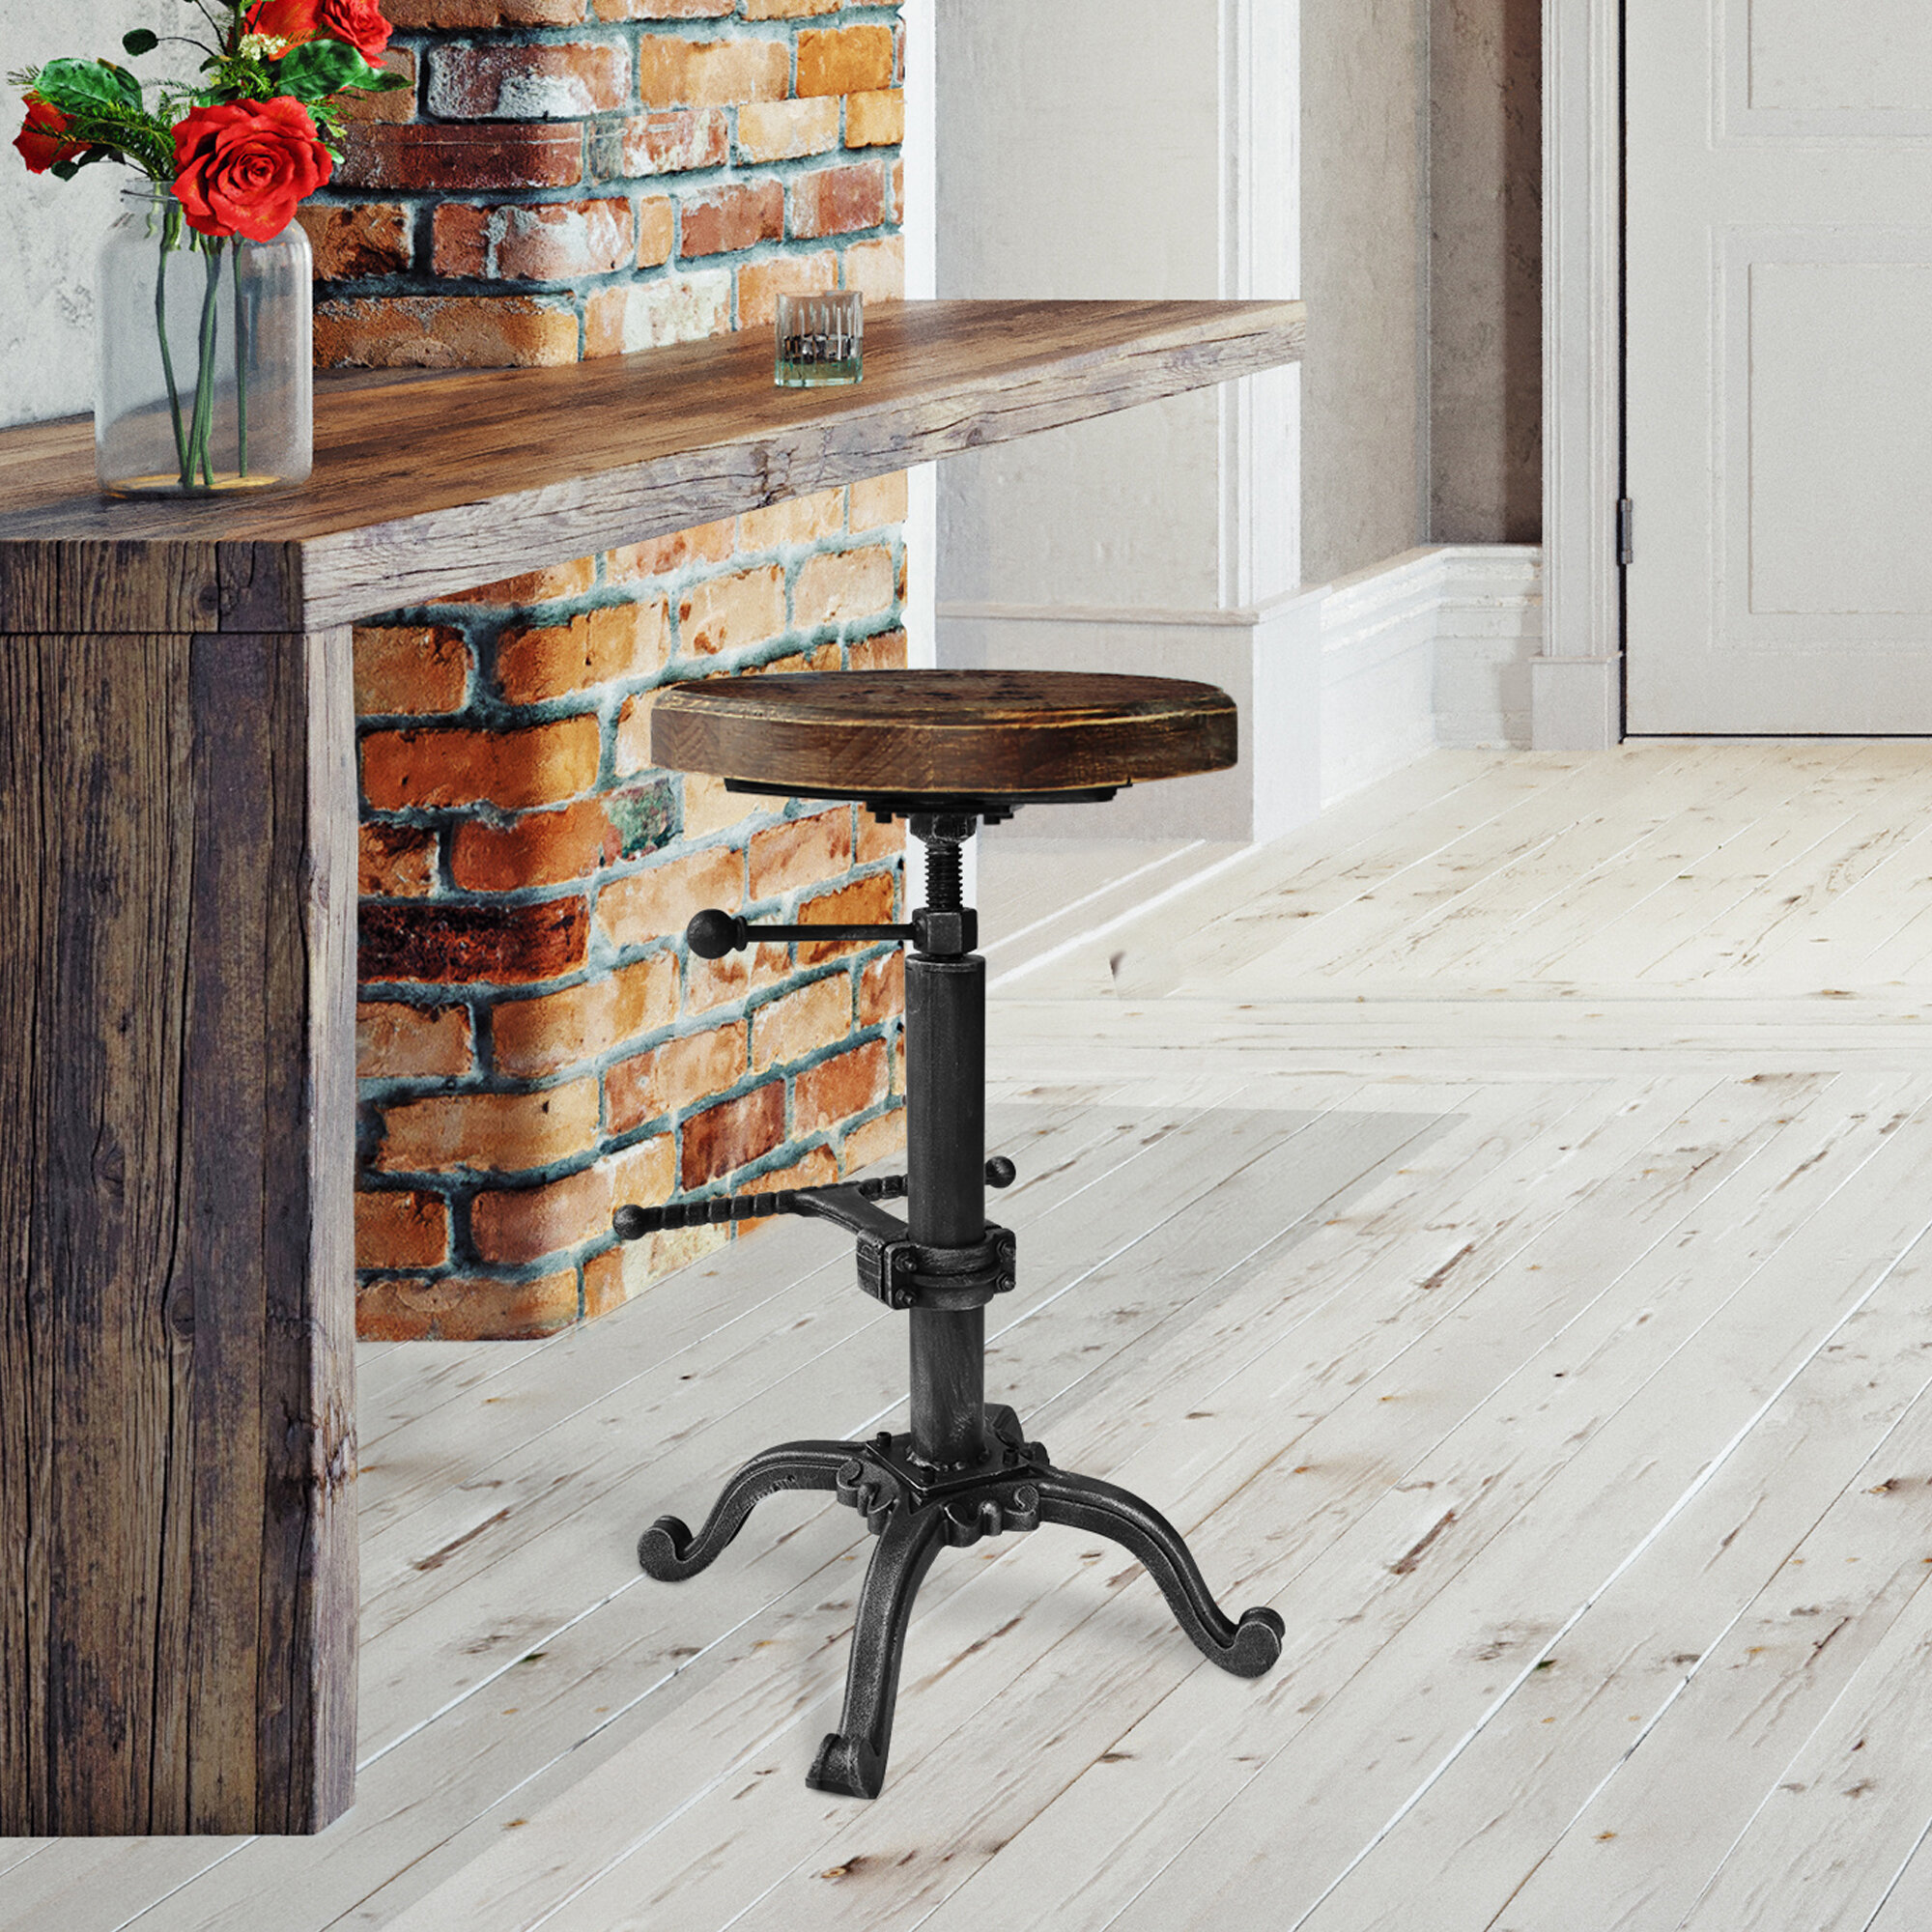 Pleasant Davi Industrial Adjustable Backless Barstool In Silver Brushed Grey With Rustic Pine Wood Seat Evergreenethics Interior Chair Design Evergreenethicsorg